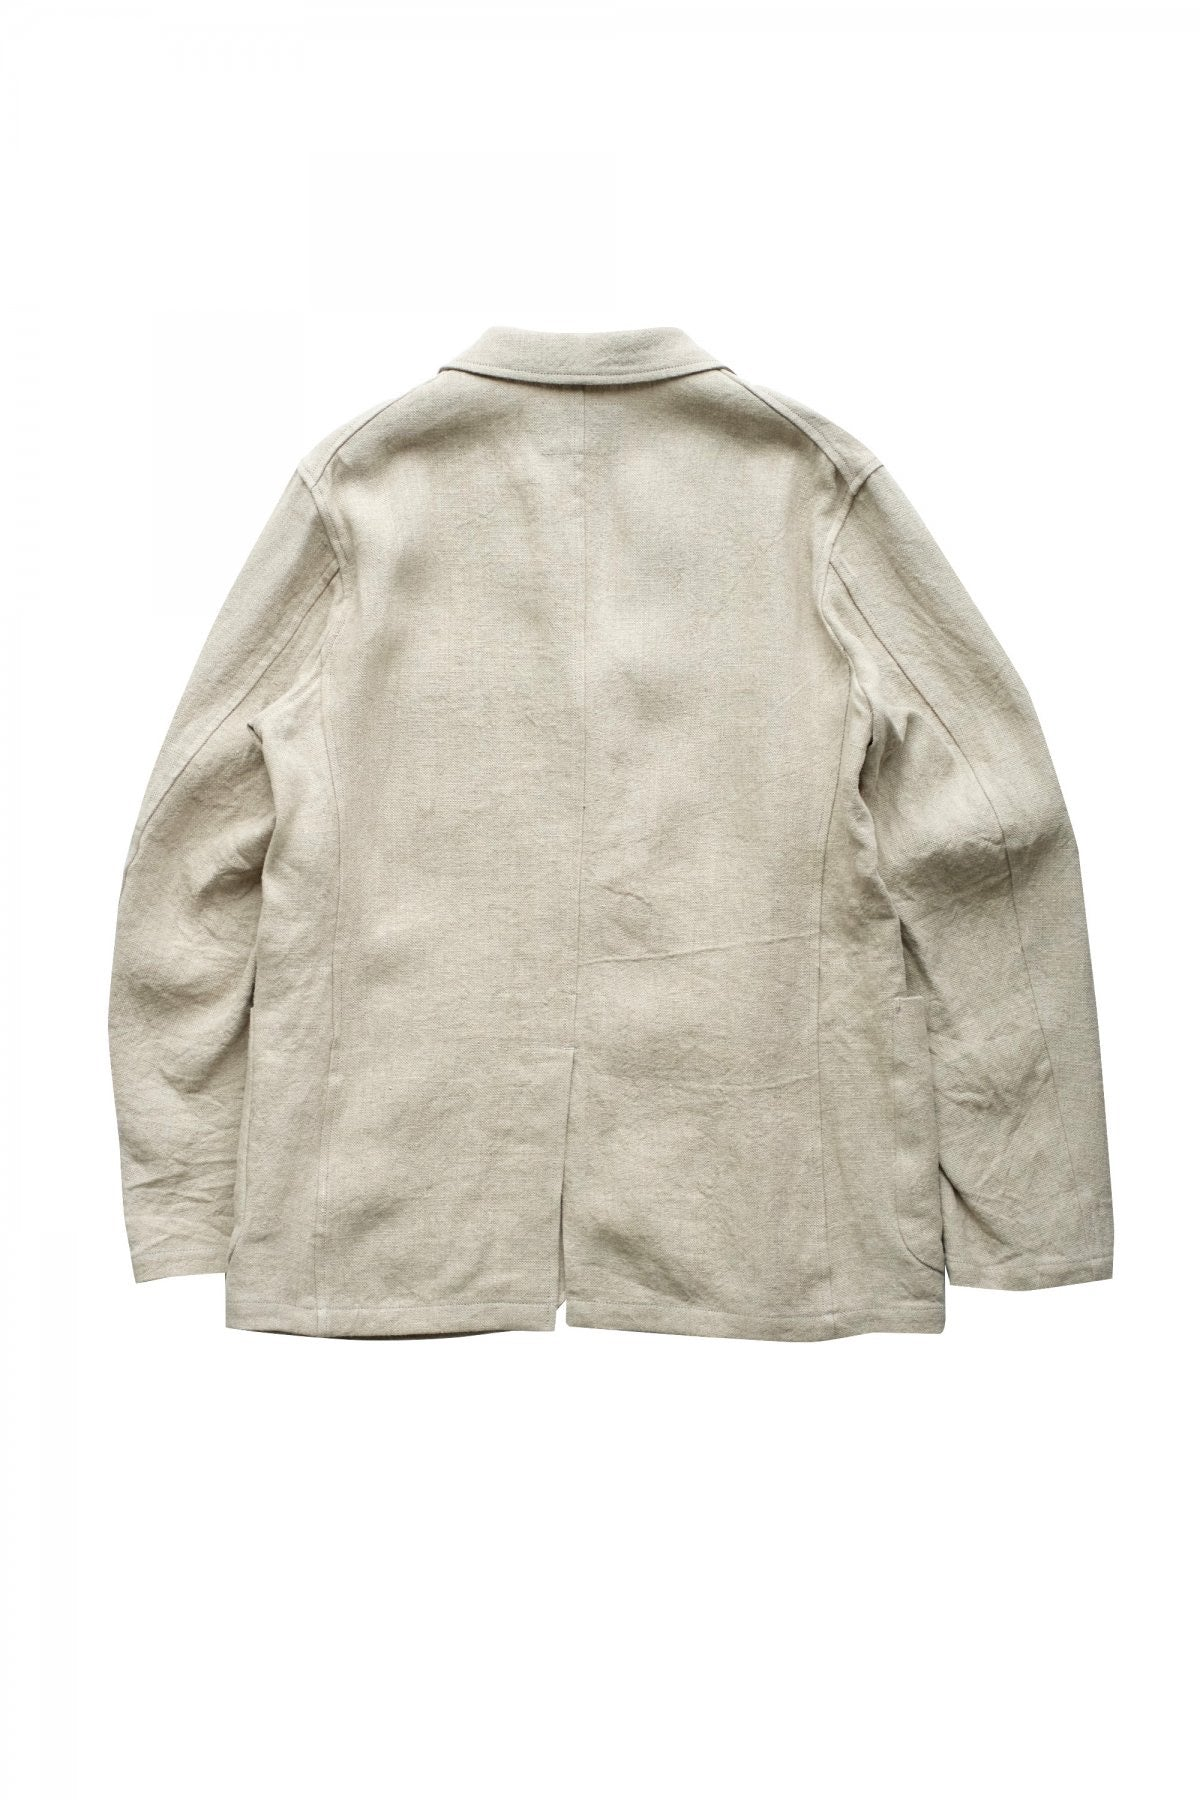 Nigel Cabourn - HOSPITAL JACKET - FRENCH LINEN IVORY